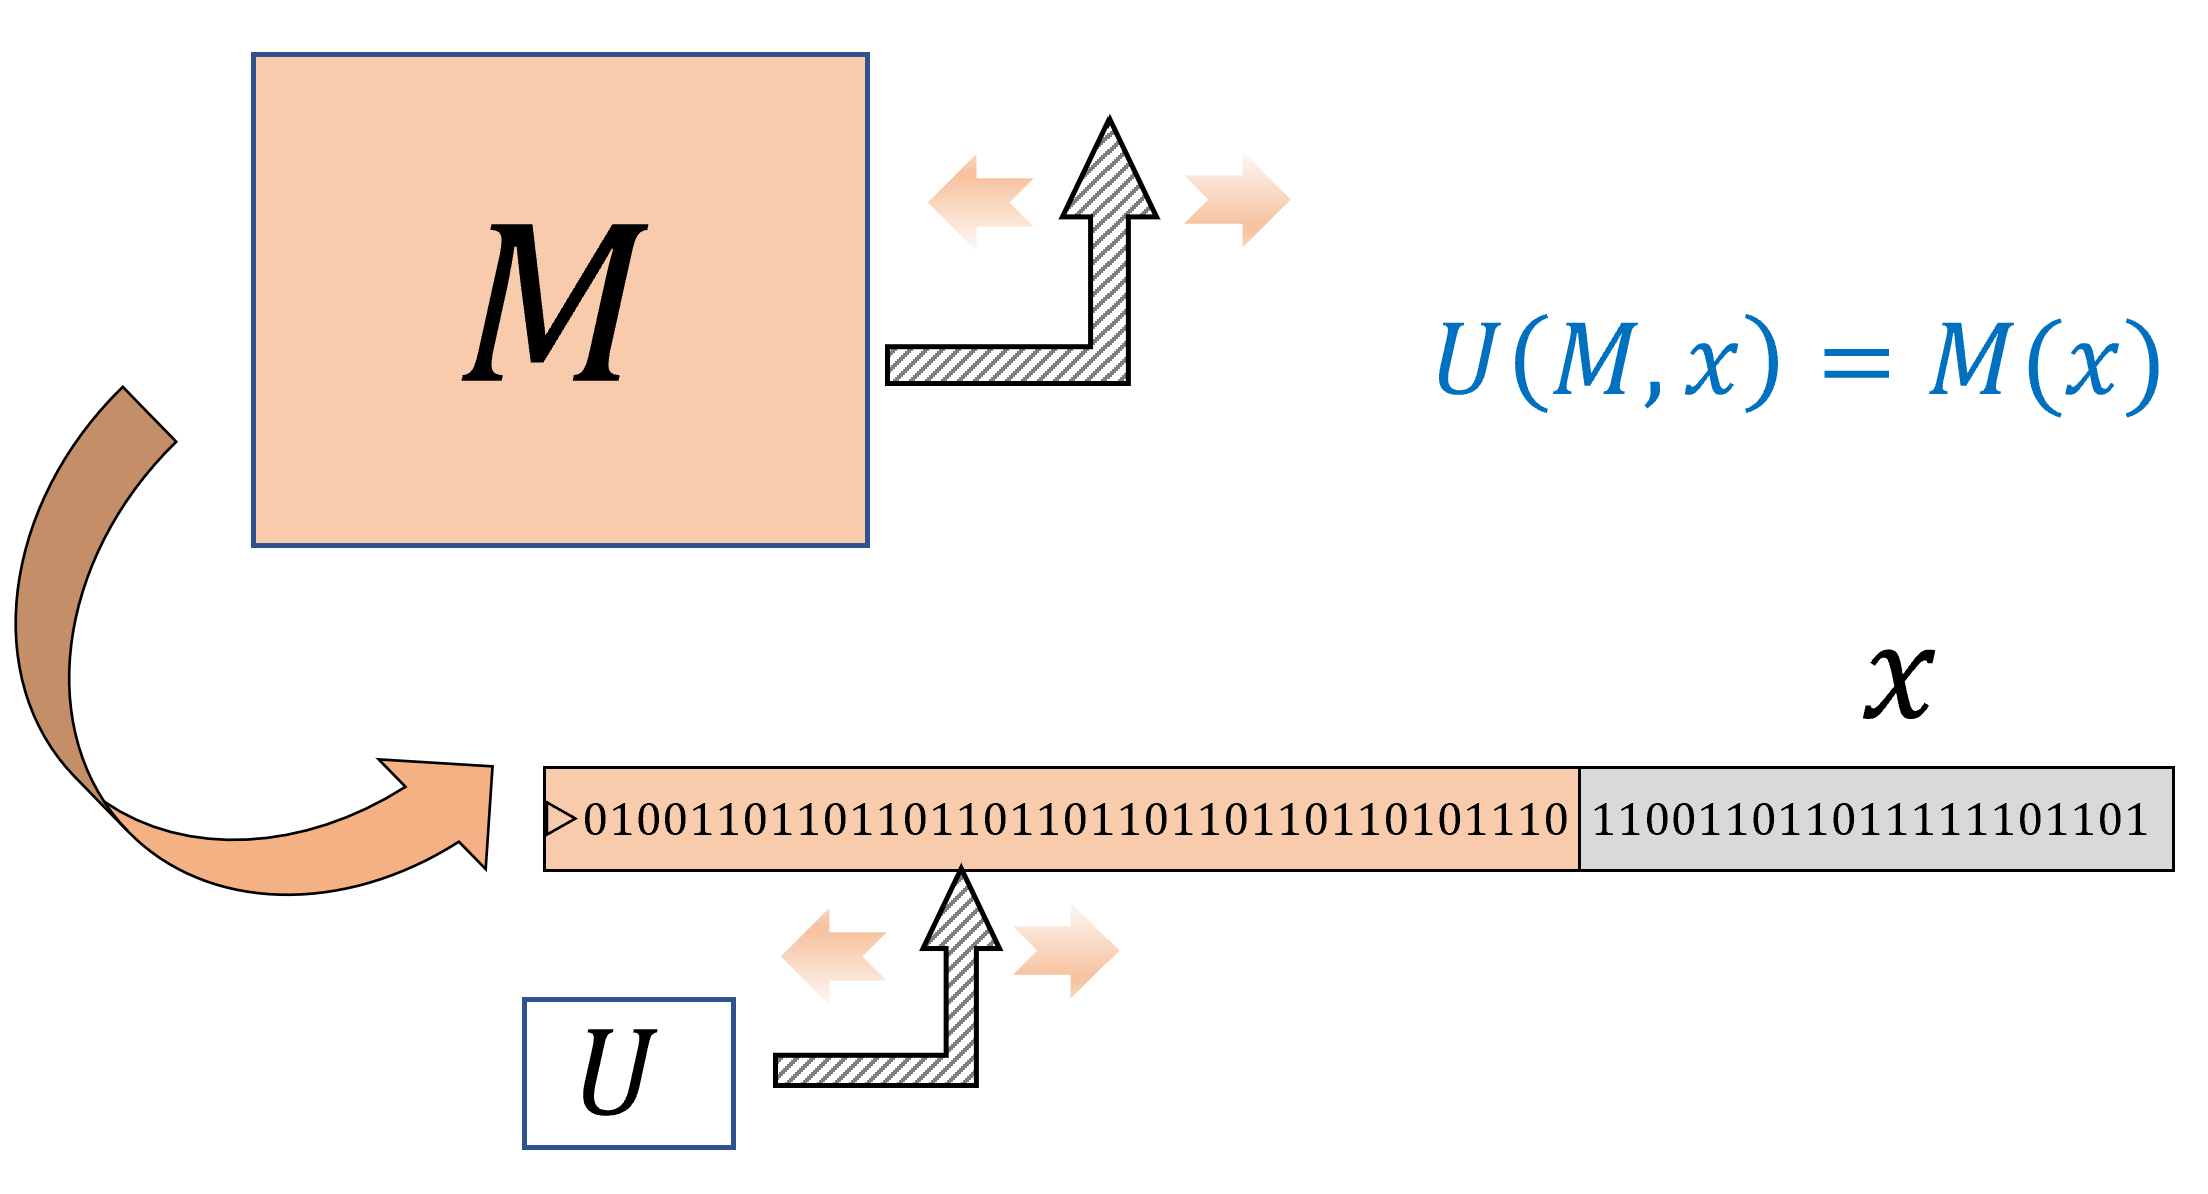 8.2: A Universal Turing Machine is a single Turing Machine U that can evaluate, given input the (description as a string of) arbitrary Turing machine M and input x, the output of M on x. In contrast to the universal circuit depicted in , the machine M can be much more complex (e.g., more states or tape alphabet symbols) than U.